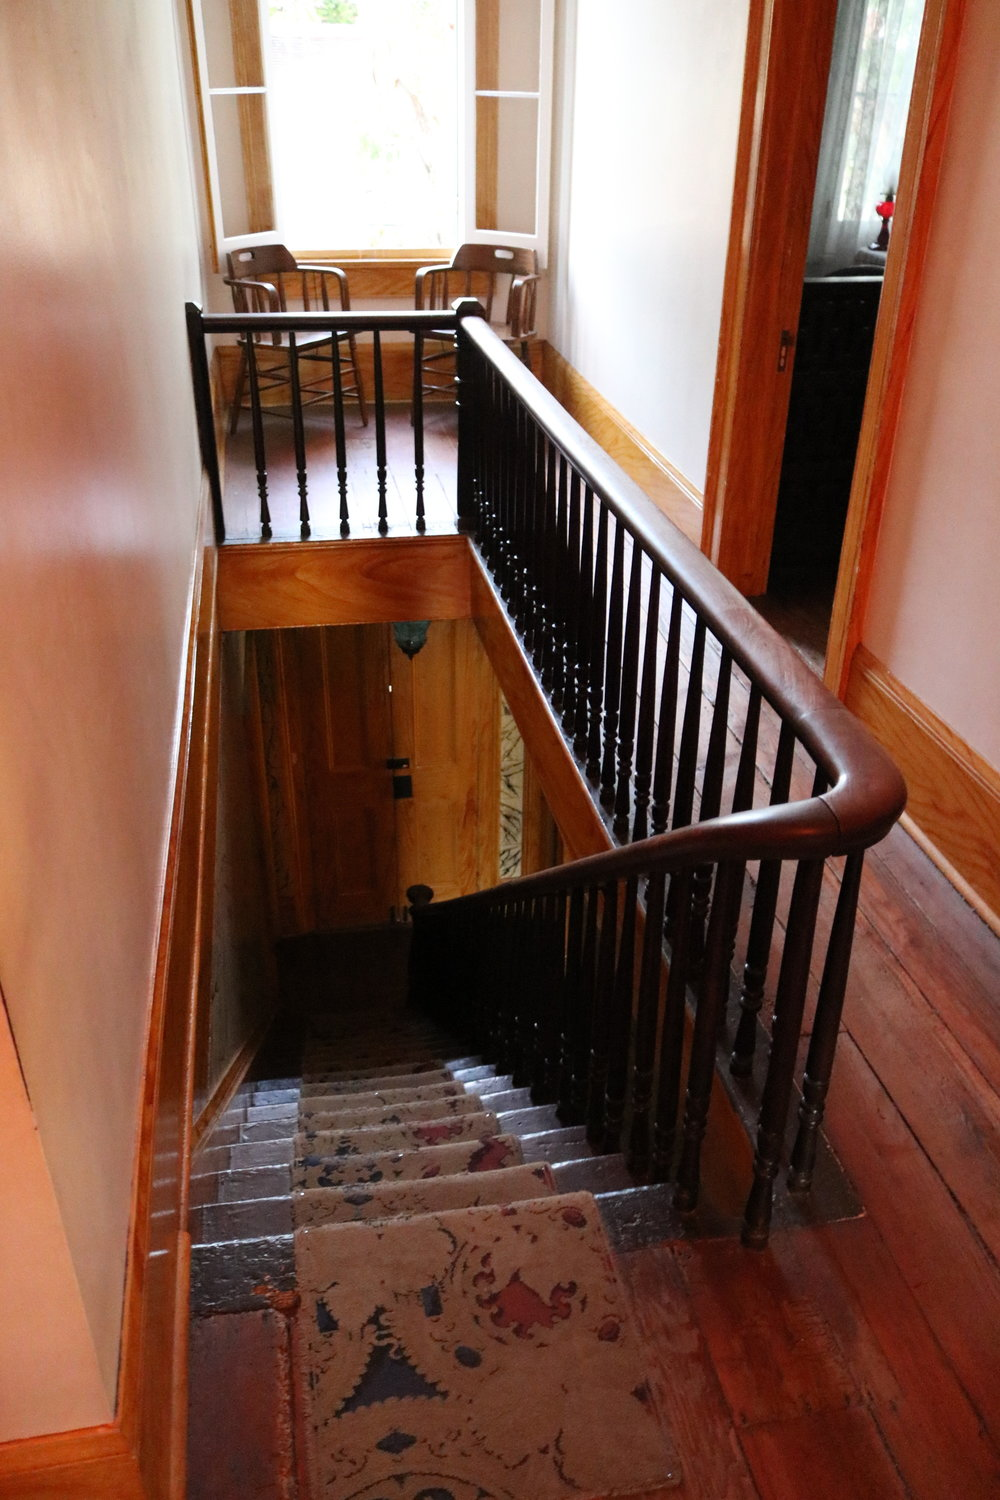 Thomas Whaley, the owner of the house, is rumored to stand regularly atop this staircase and look down at something of an indeterminate nature.